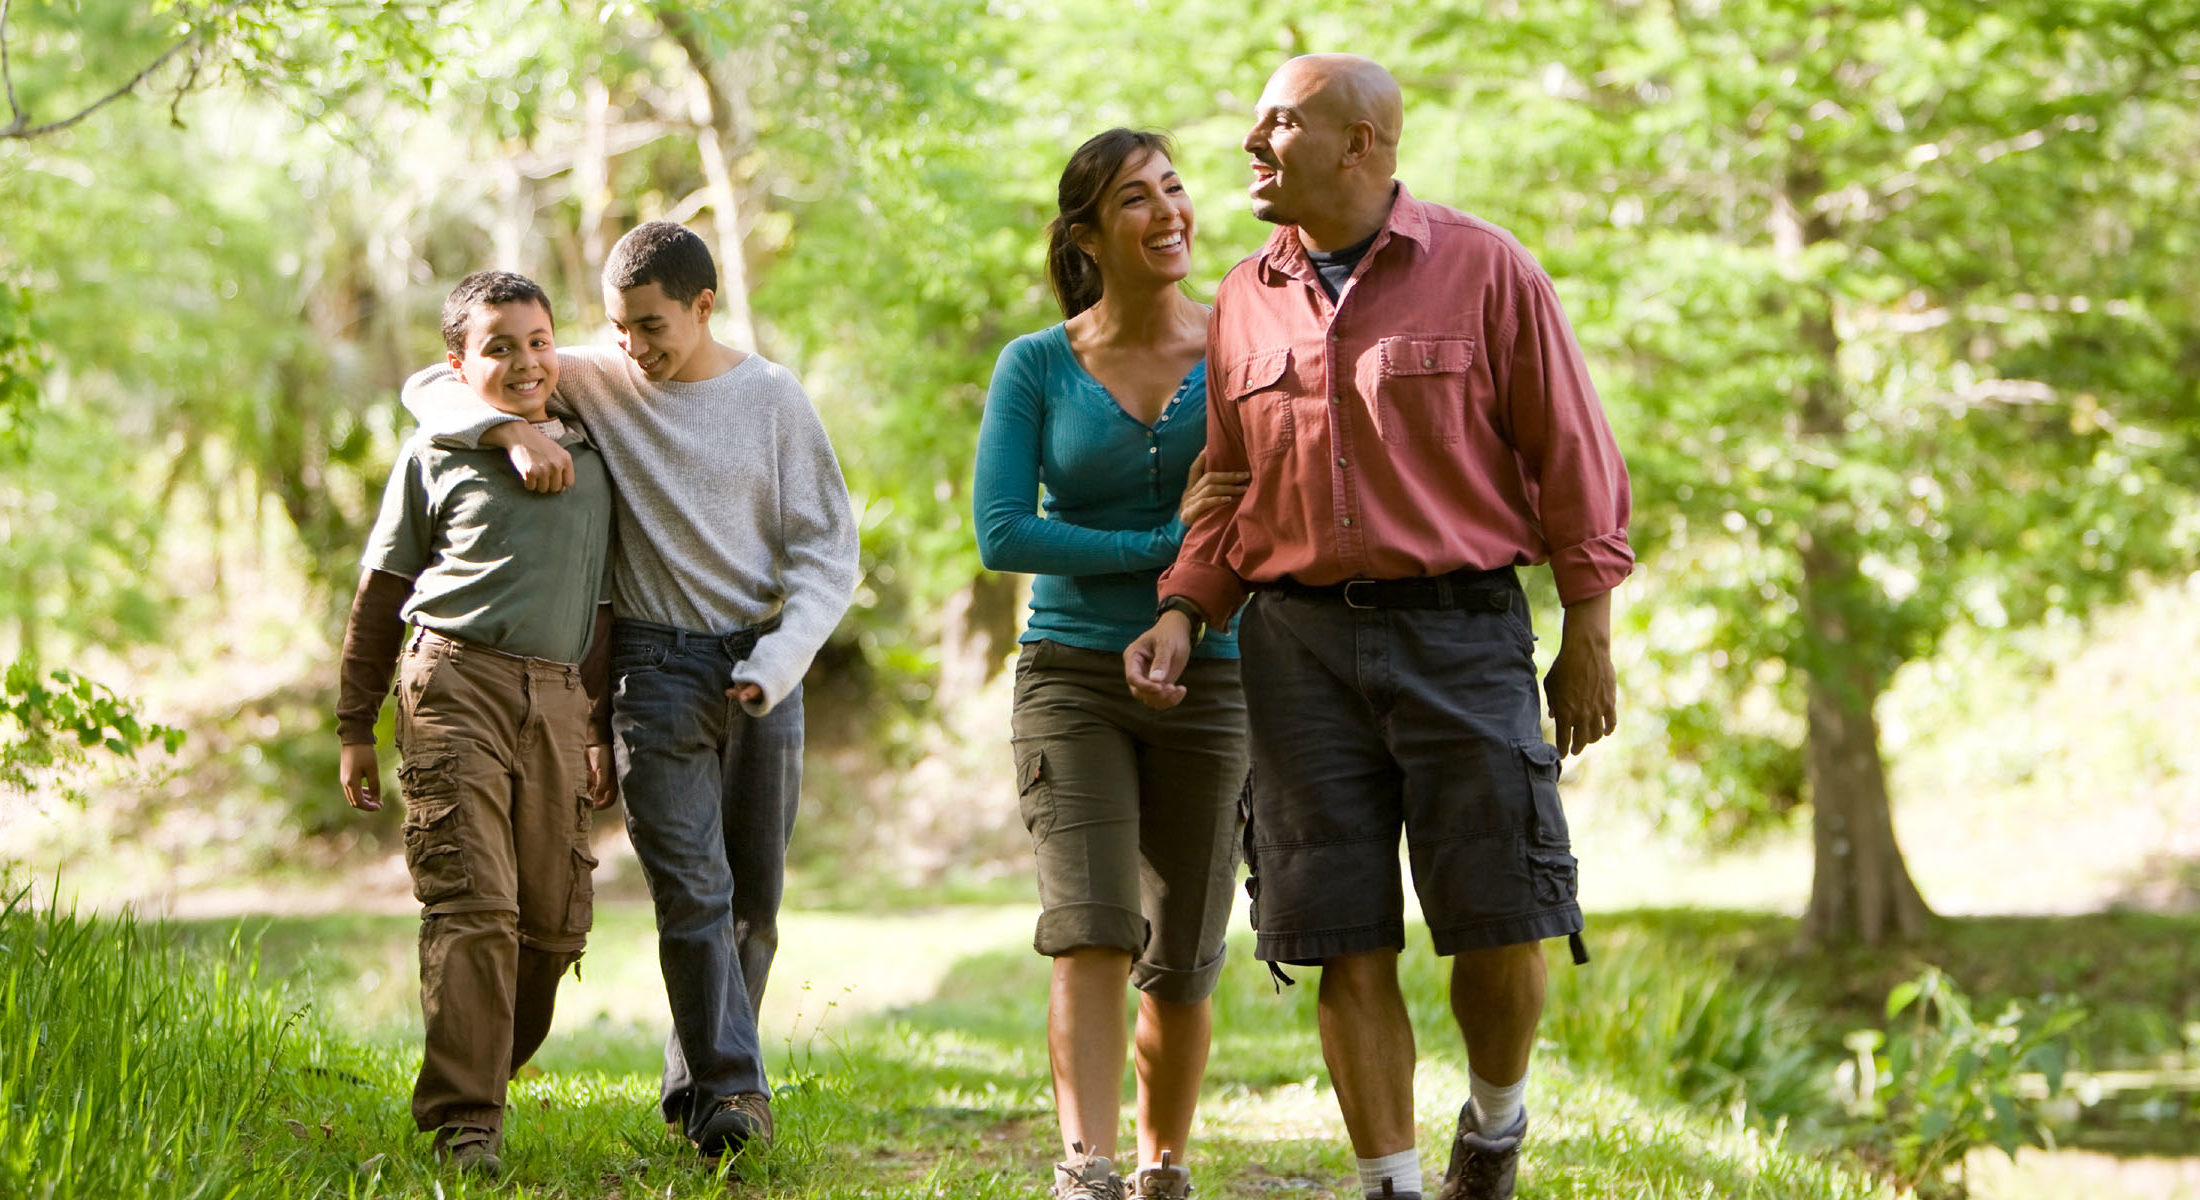 Hispanic family walking outdoors smiling with two sons